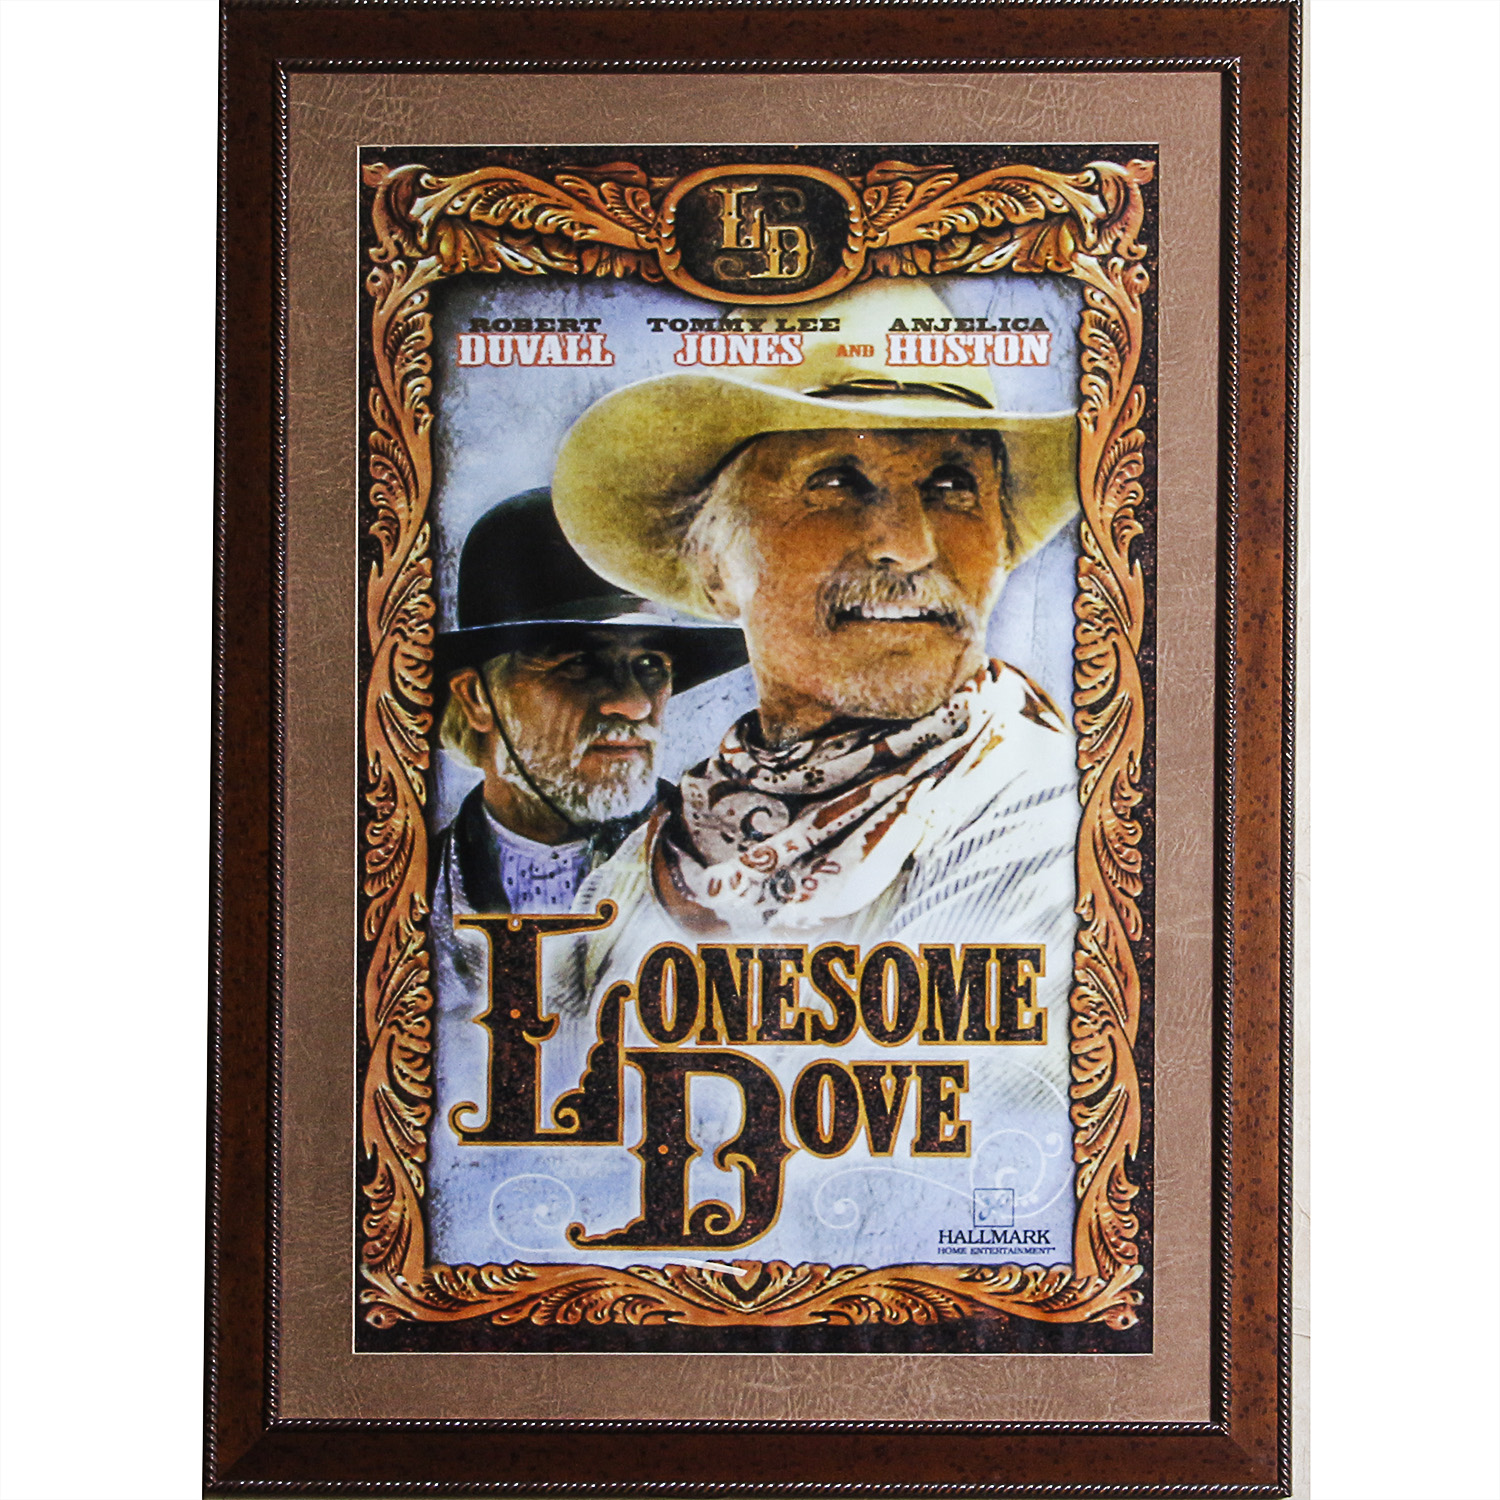 'LONESOME DOVE' (1989) – Best ever mini-series.